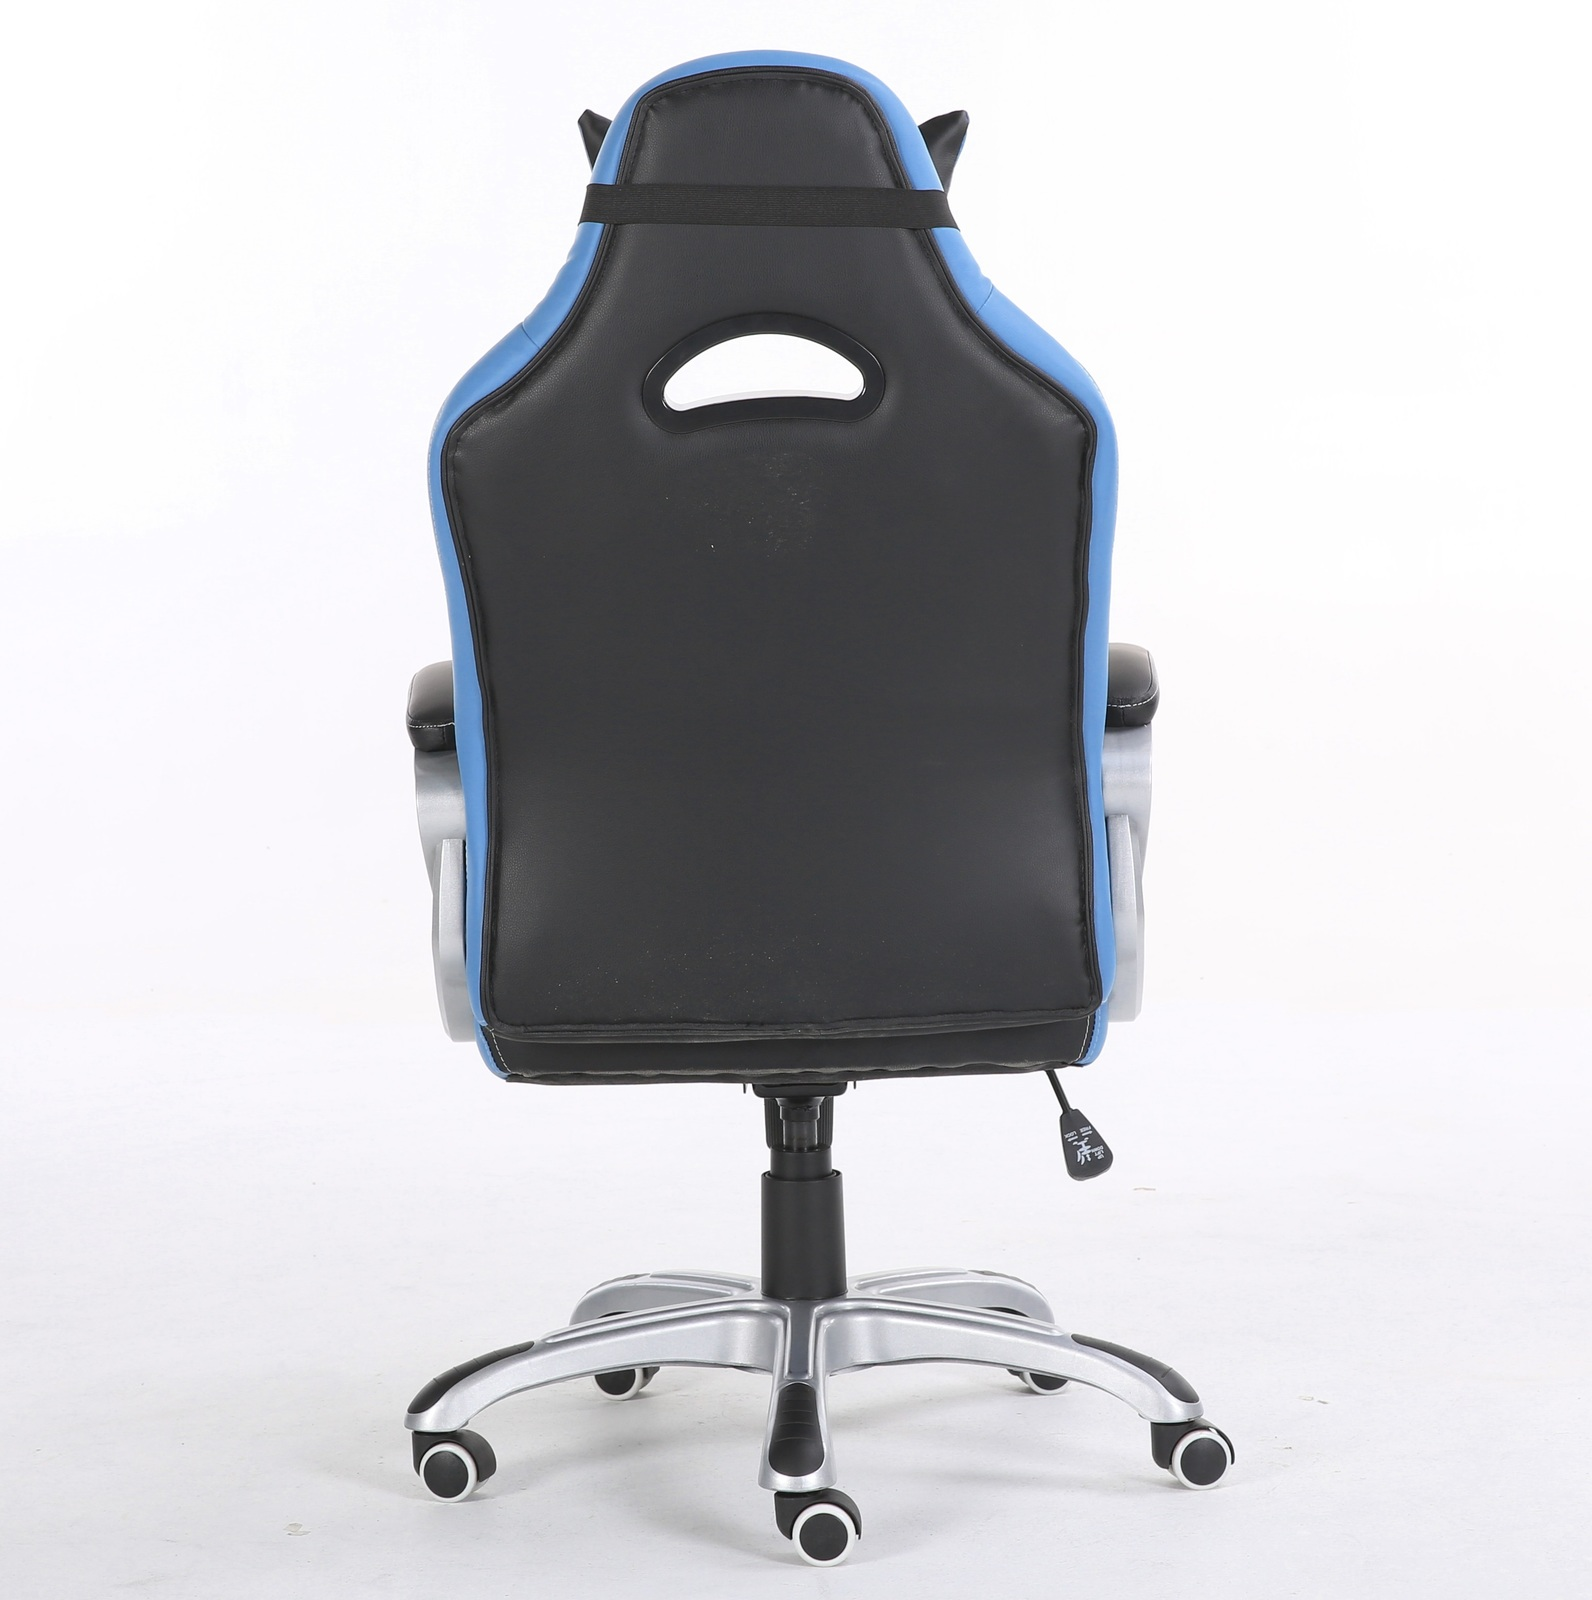 Playmax Gaming Chair Blue and Black for  image